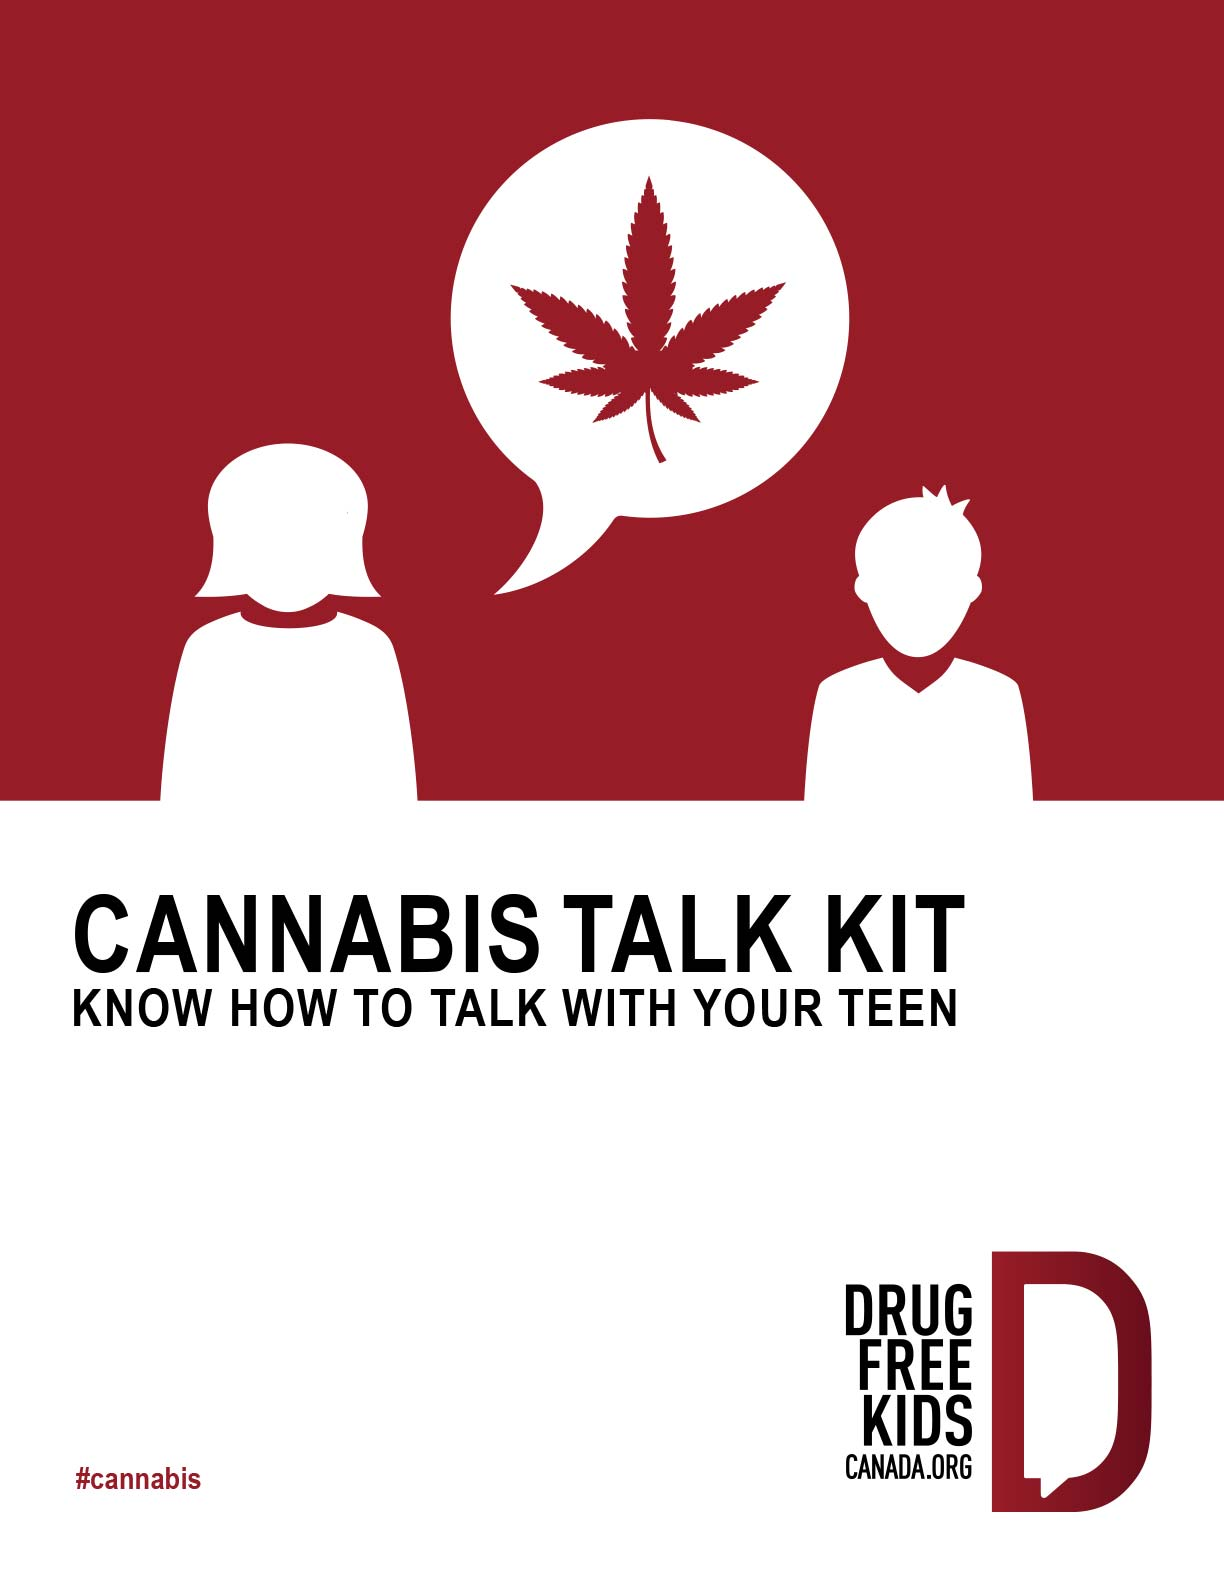 Cannabis talk kit: know how to talk with your teen. 5